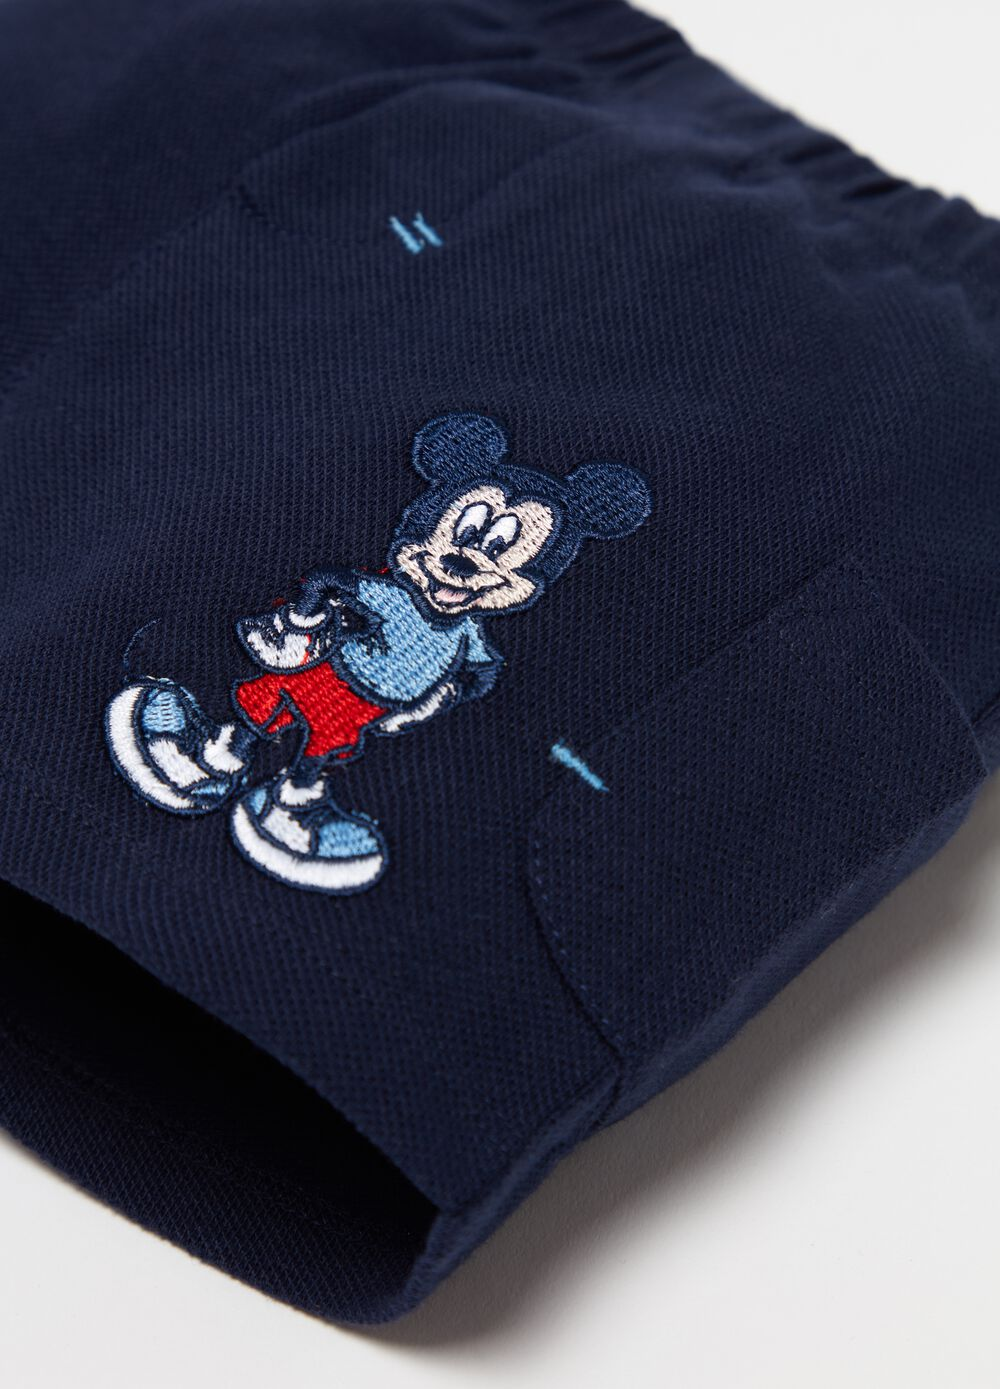 Disney Baby shorts with Mickey Mouse patch